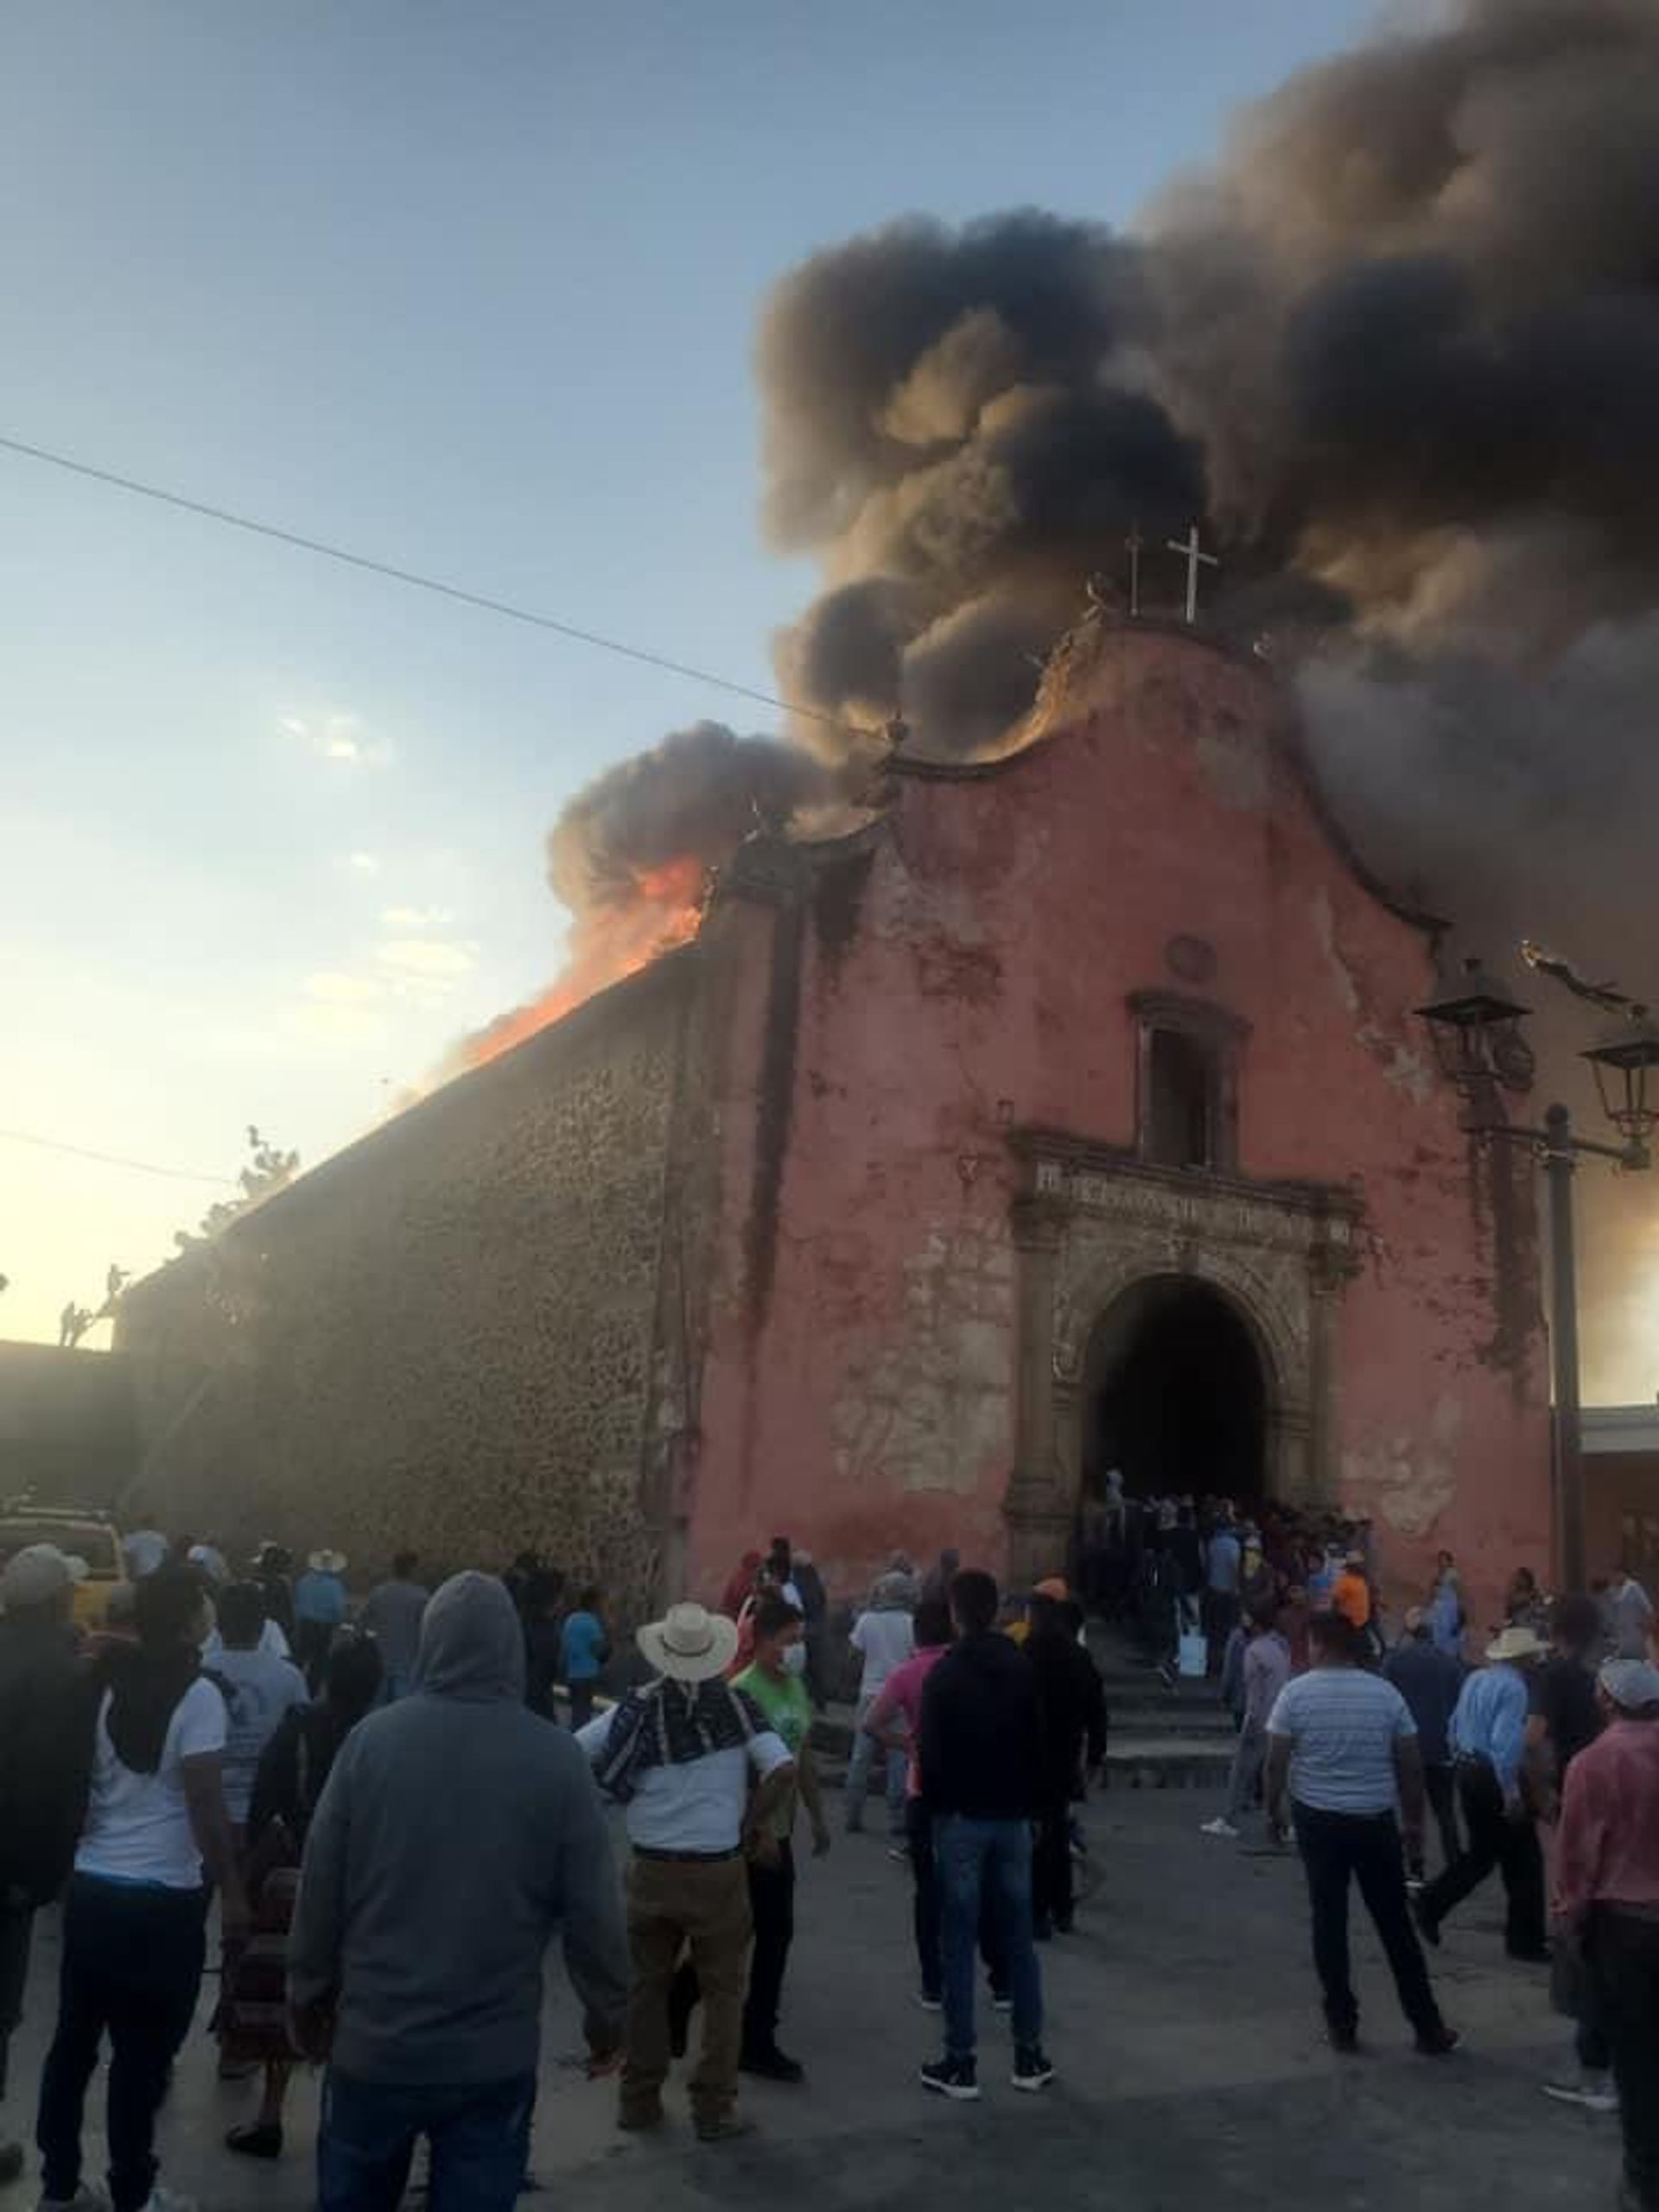 A fire that broke at St James the Apostle church in Nurio, in the Mexican state of Michoacán, last week destroyed the building's interior